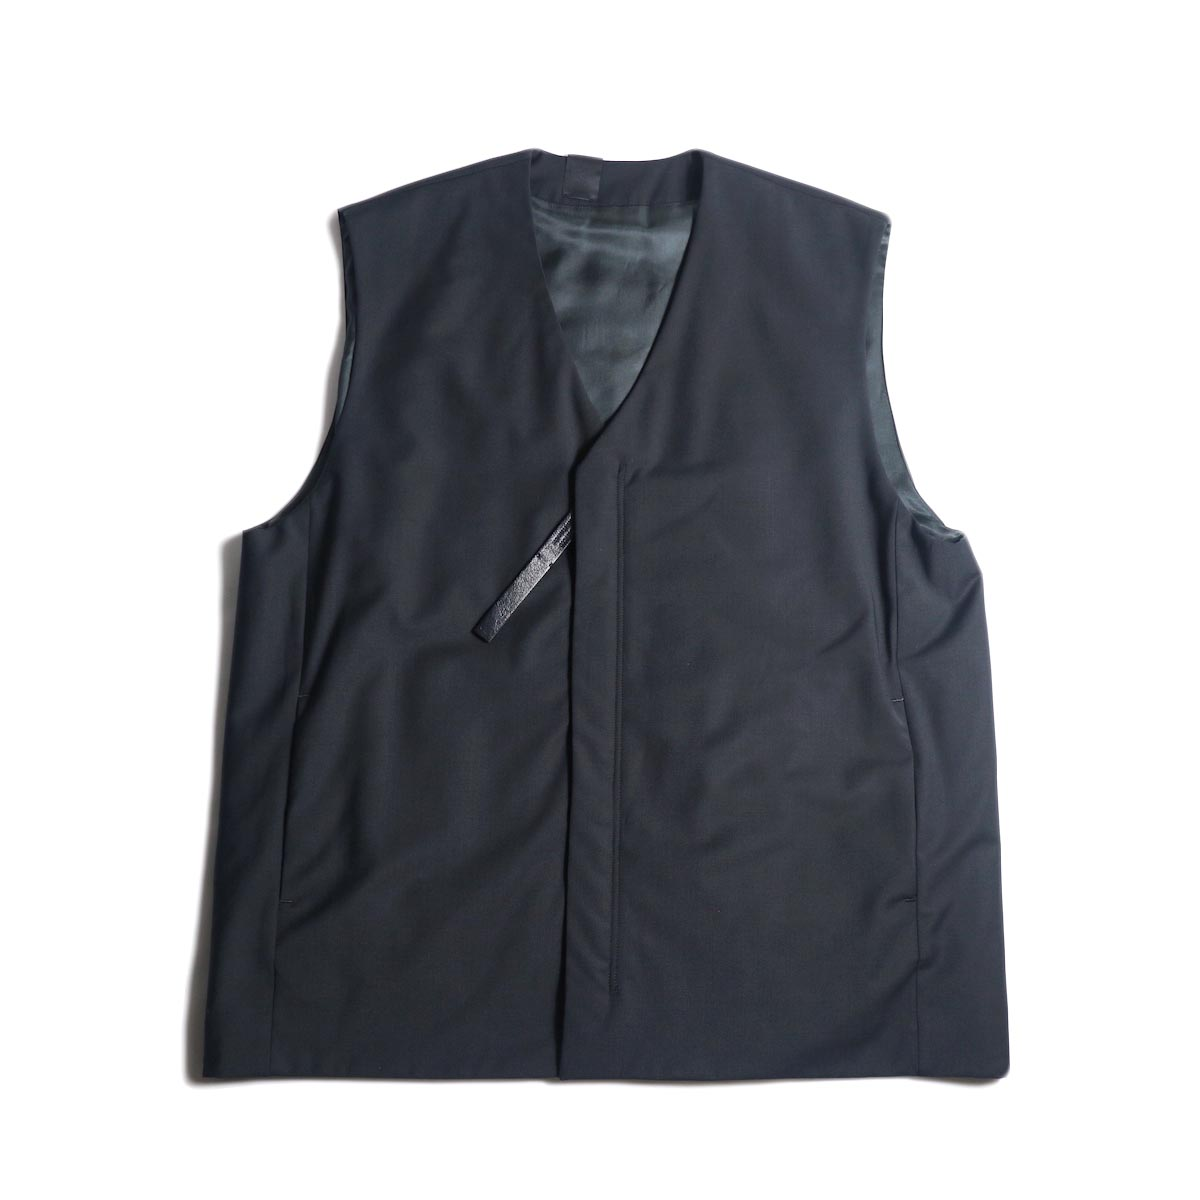 N.HOOLYWOOD / 2202-VE03-002 Vest (Black)